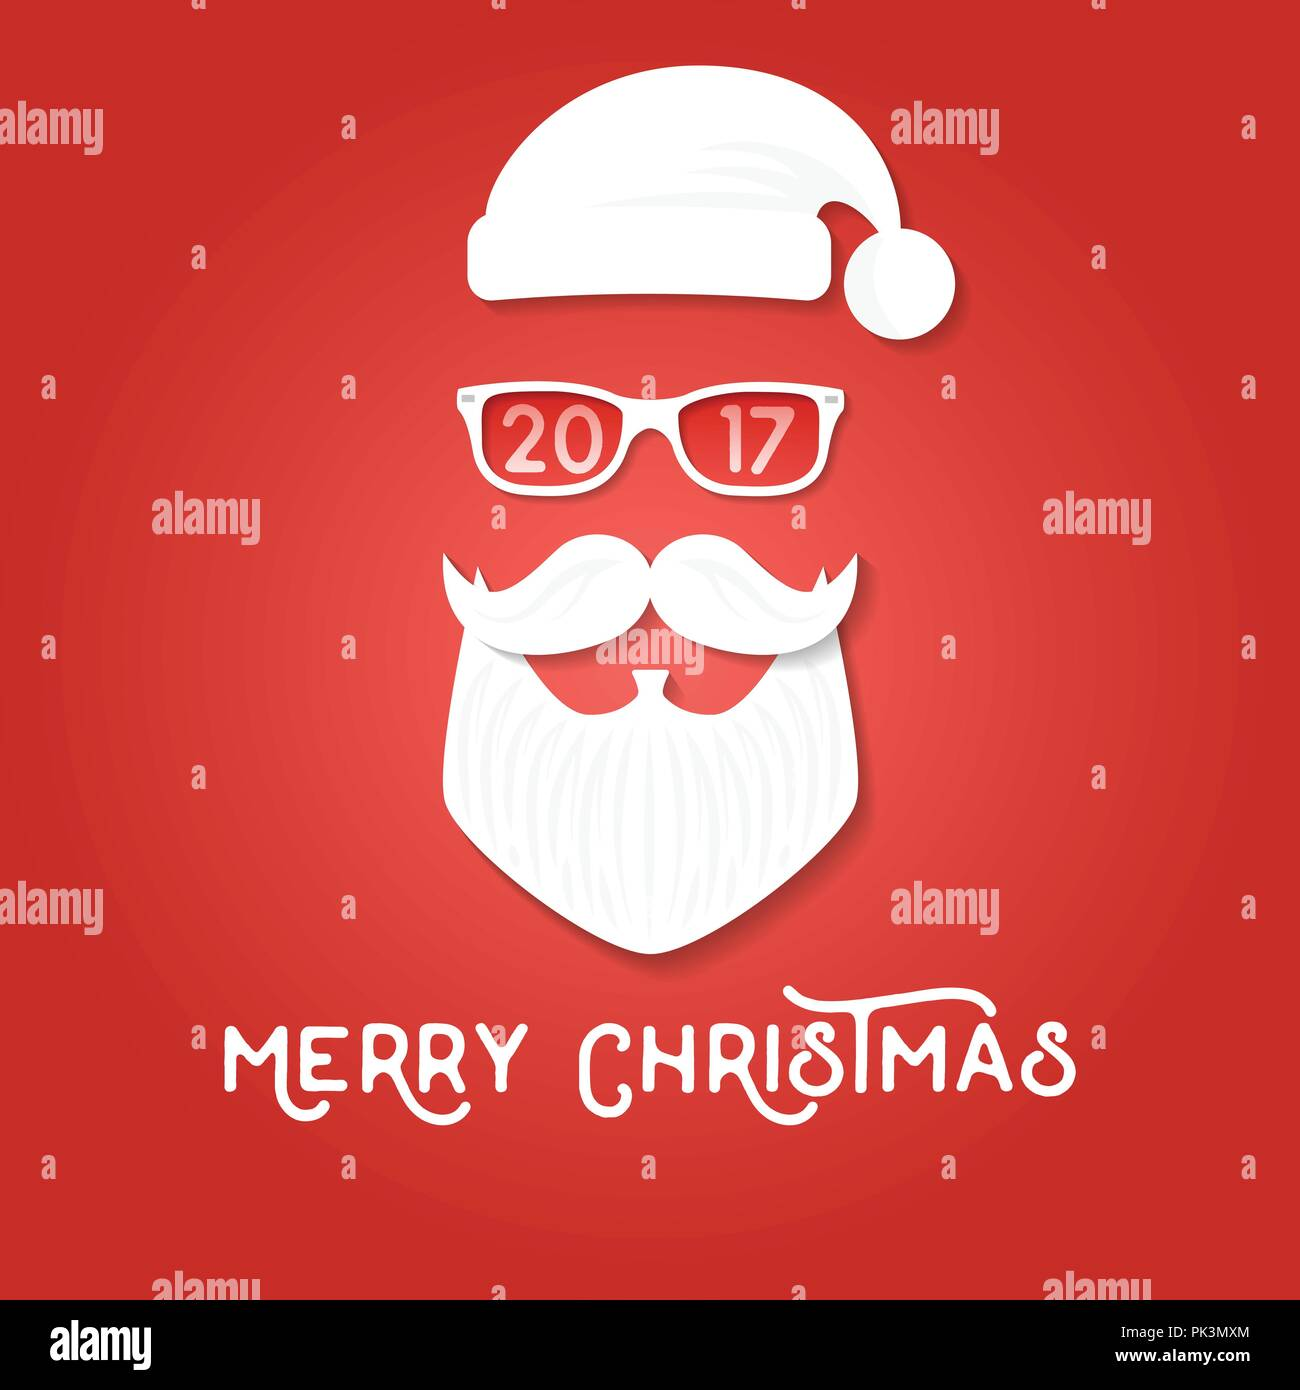 Merry Christmas Greeting Card Template Santa Claus On The Red